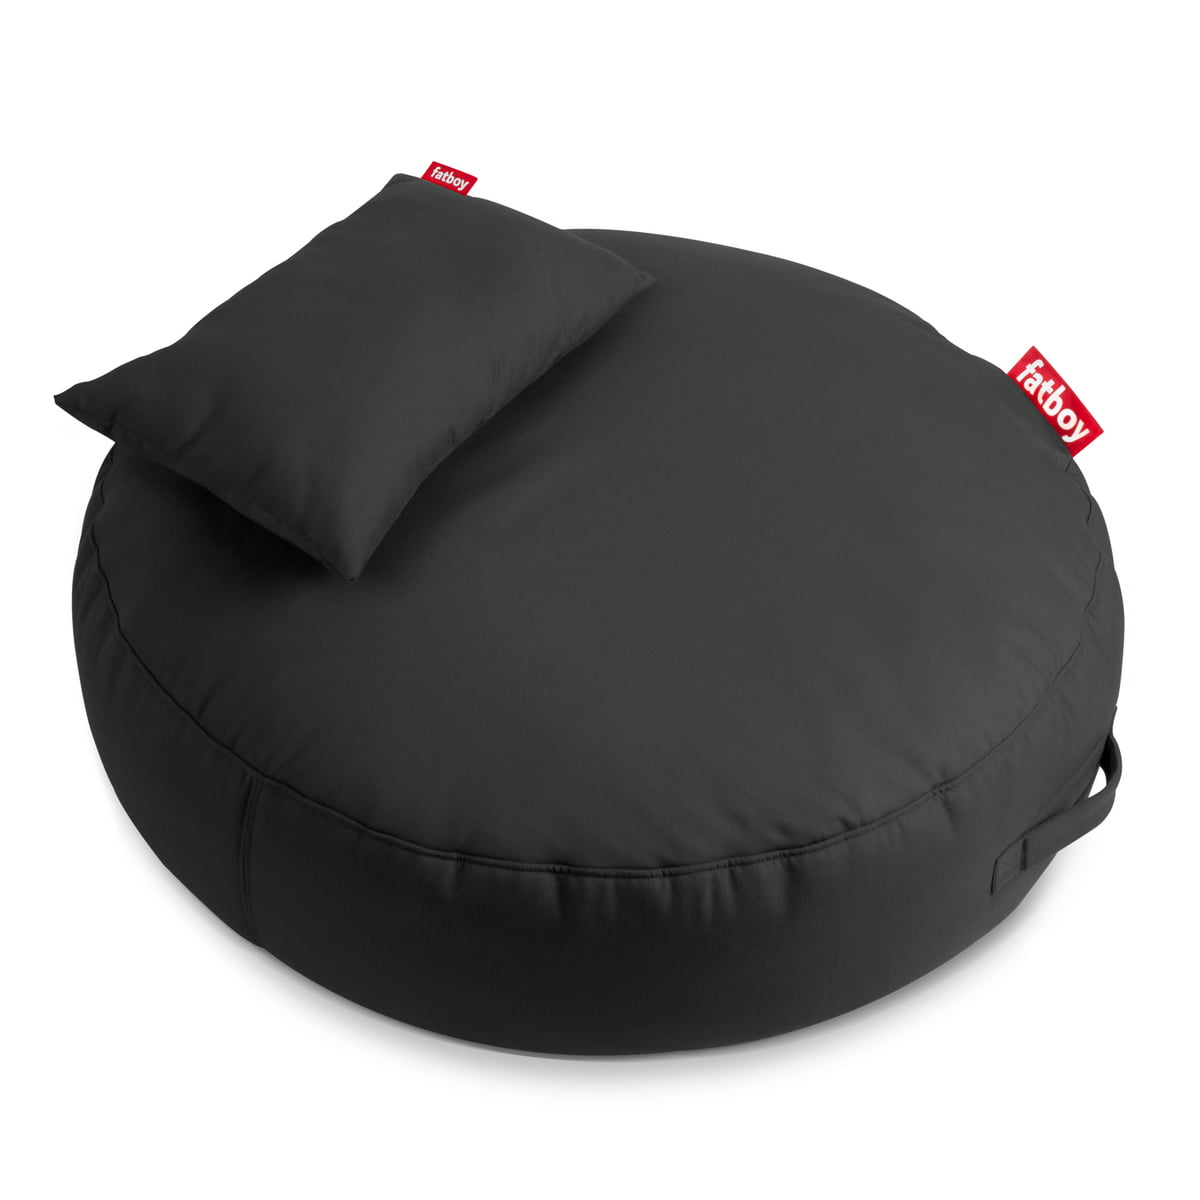 pouf d ext rieur pupillow de fatboy connox. Black Bedroom Furniture Sets. Home Design Ideas